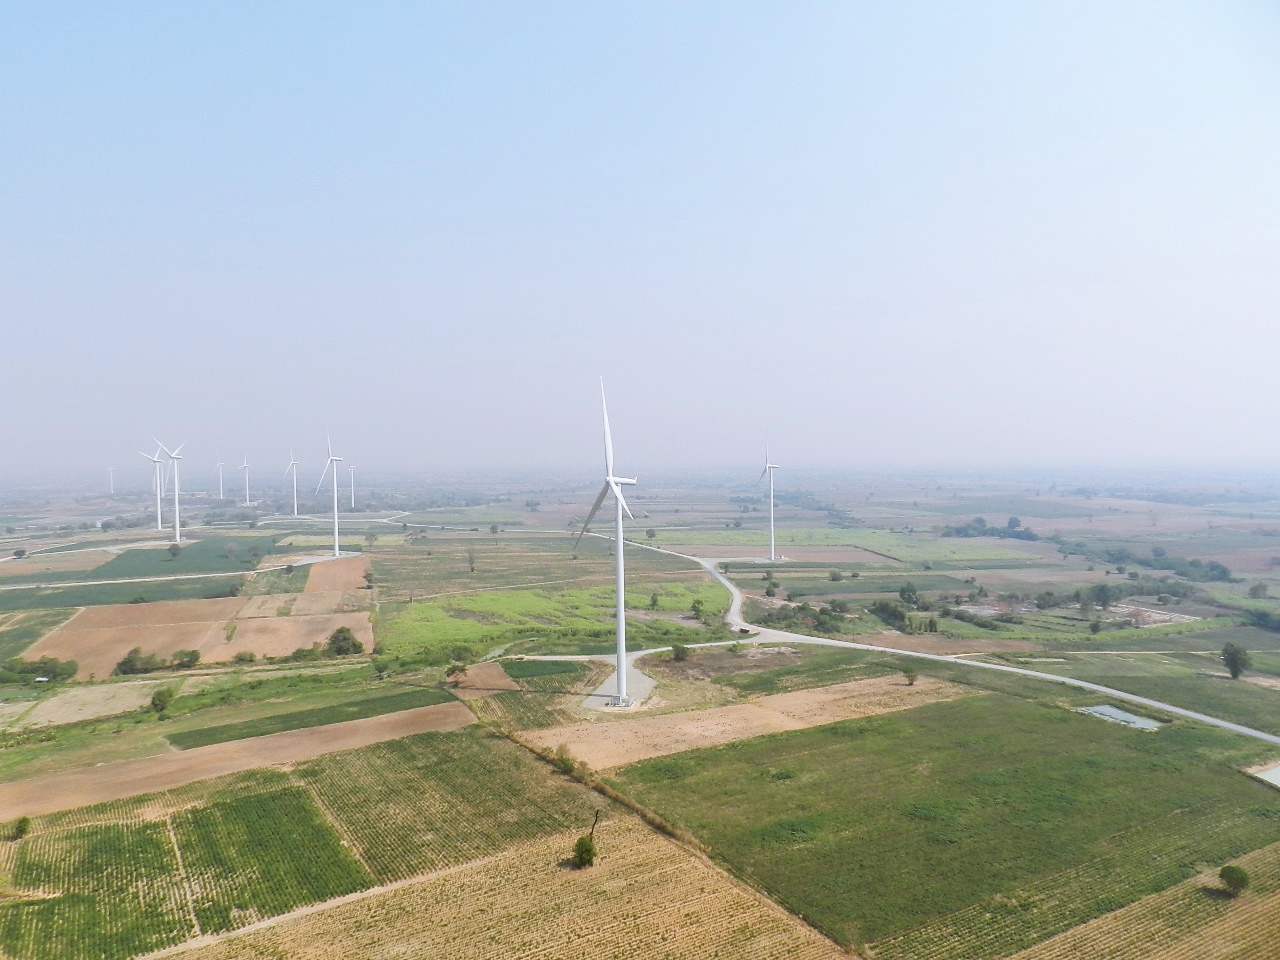 Landscape photo of the Huay Bong wind farm